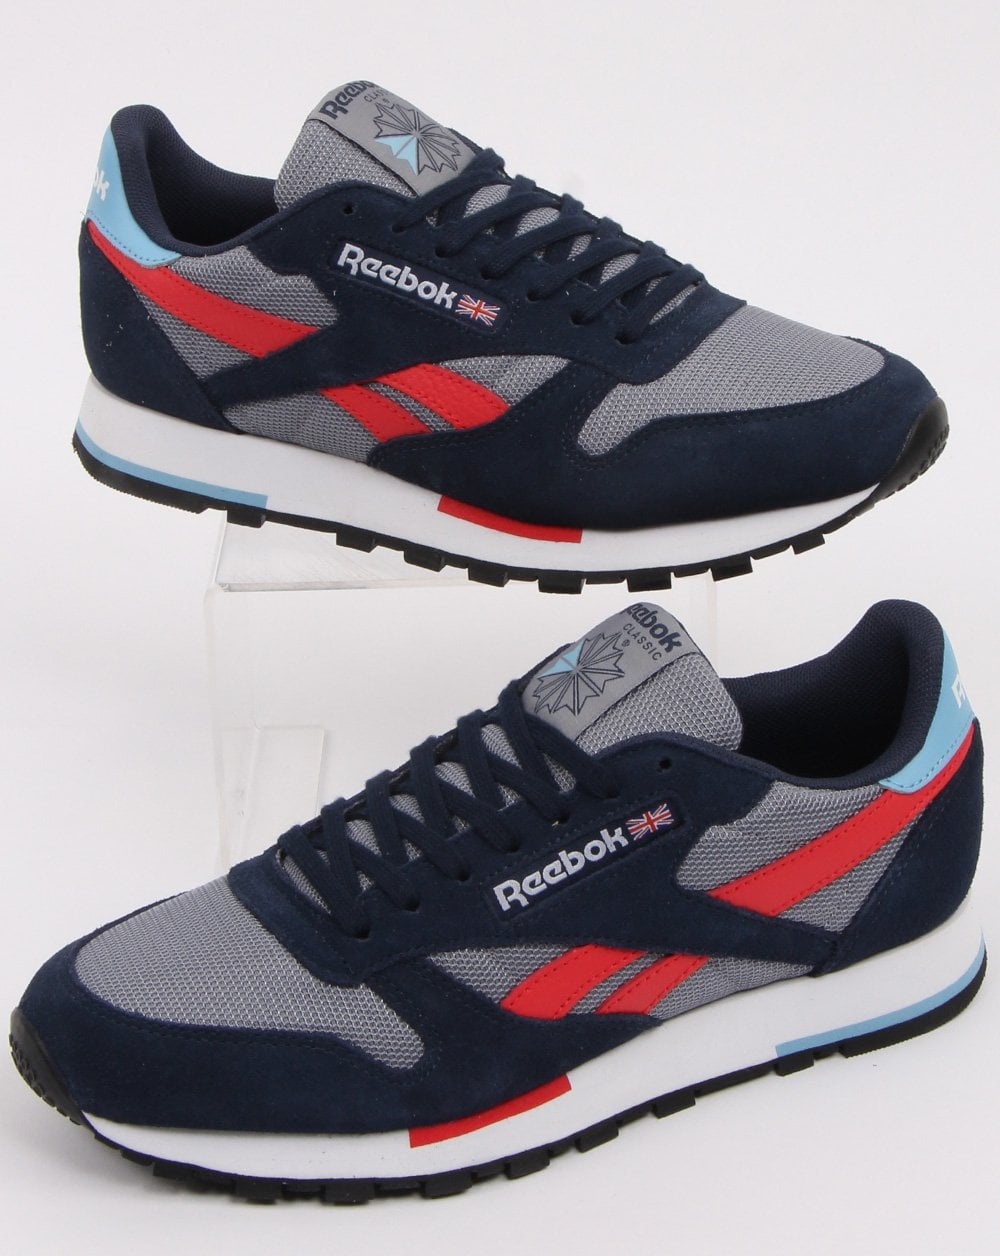 9d450db01b8 Reebok Reebok Classic Leather Trainers Grey navy